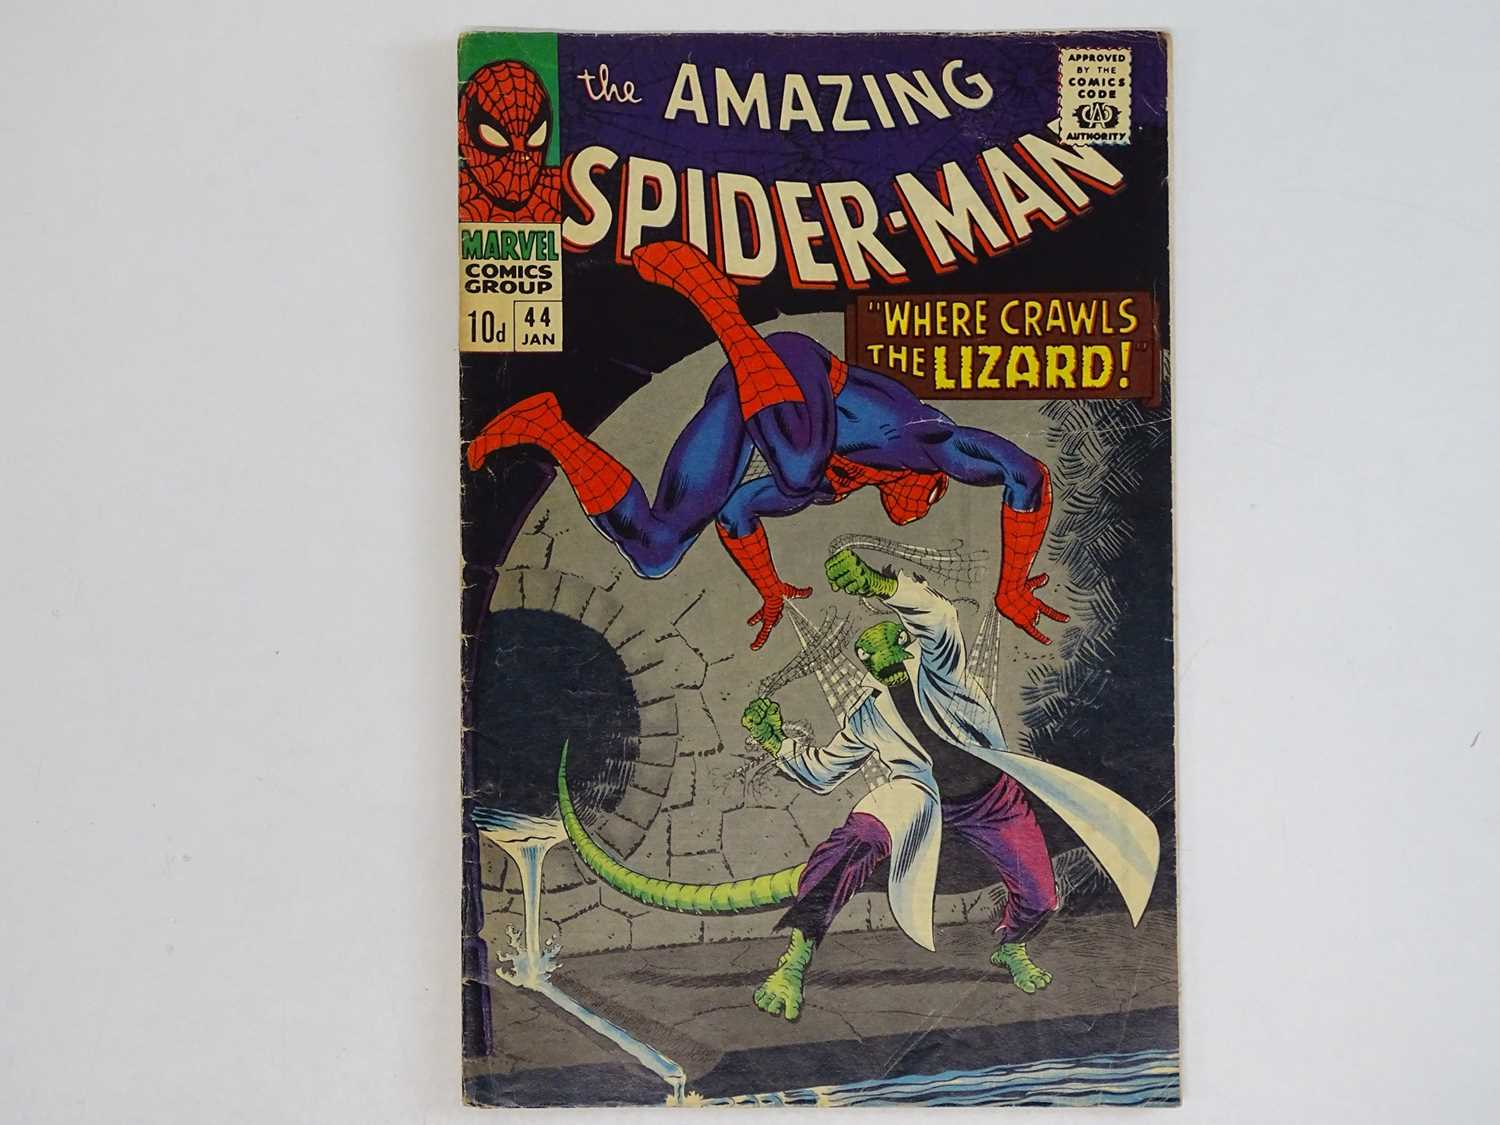 AMAZING SPIDER-MAN #44 - (1966 - MARVEL - UK Price Variant) - Second appearance of the Lizard - John